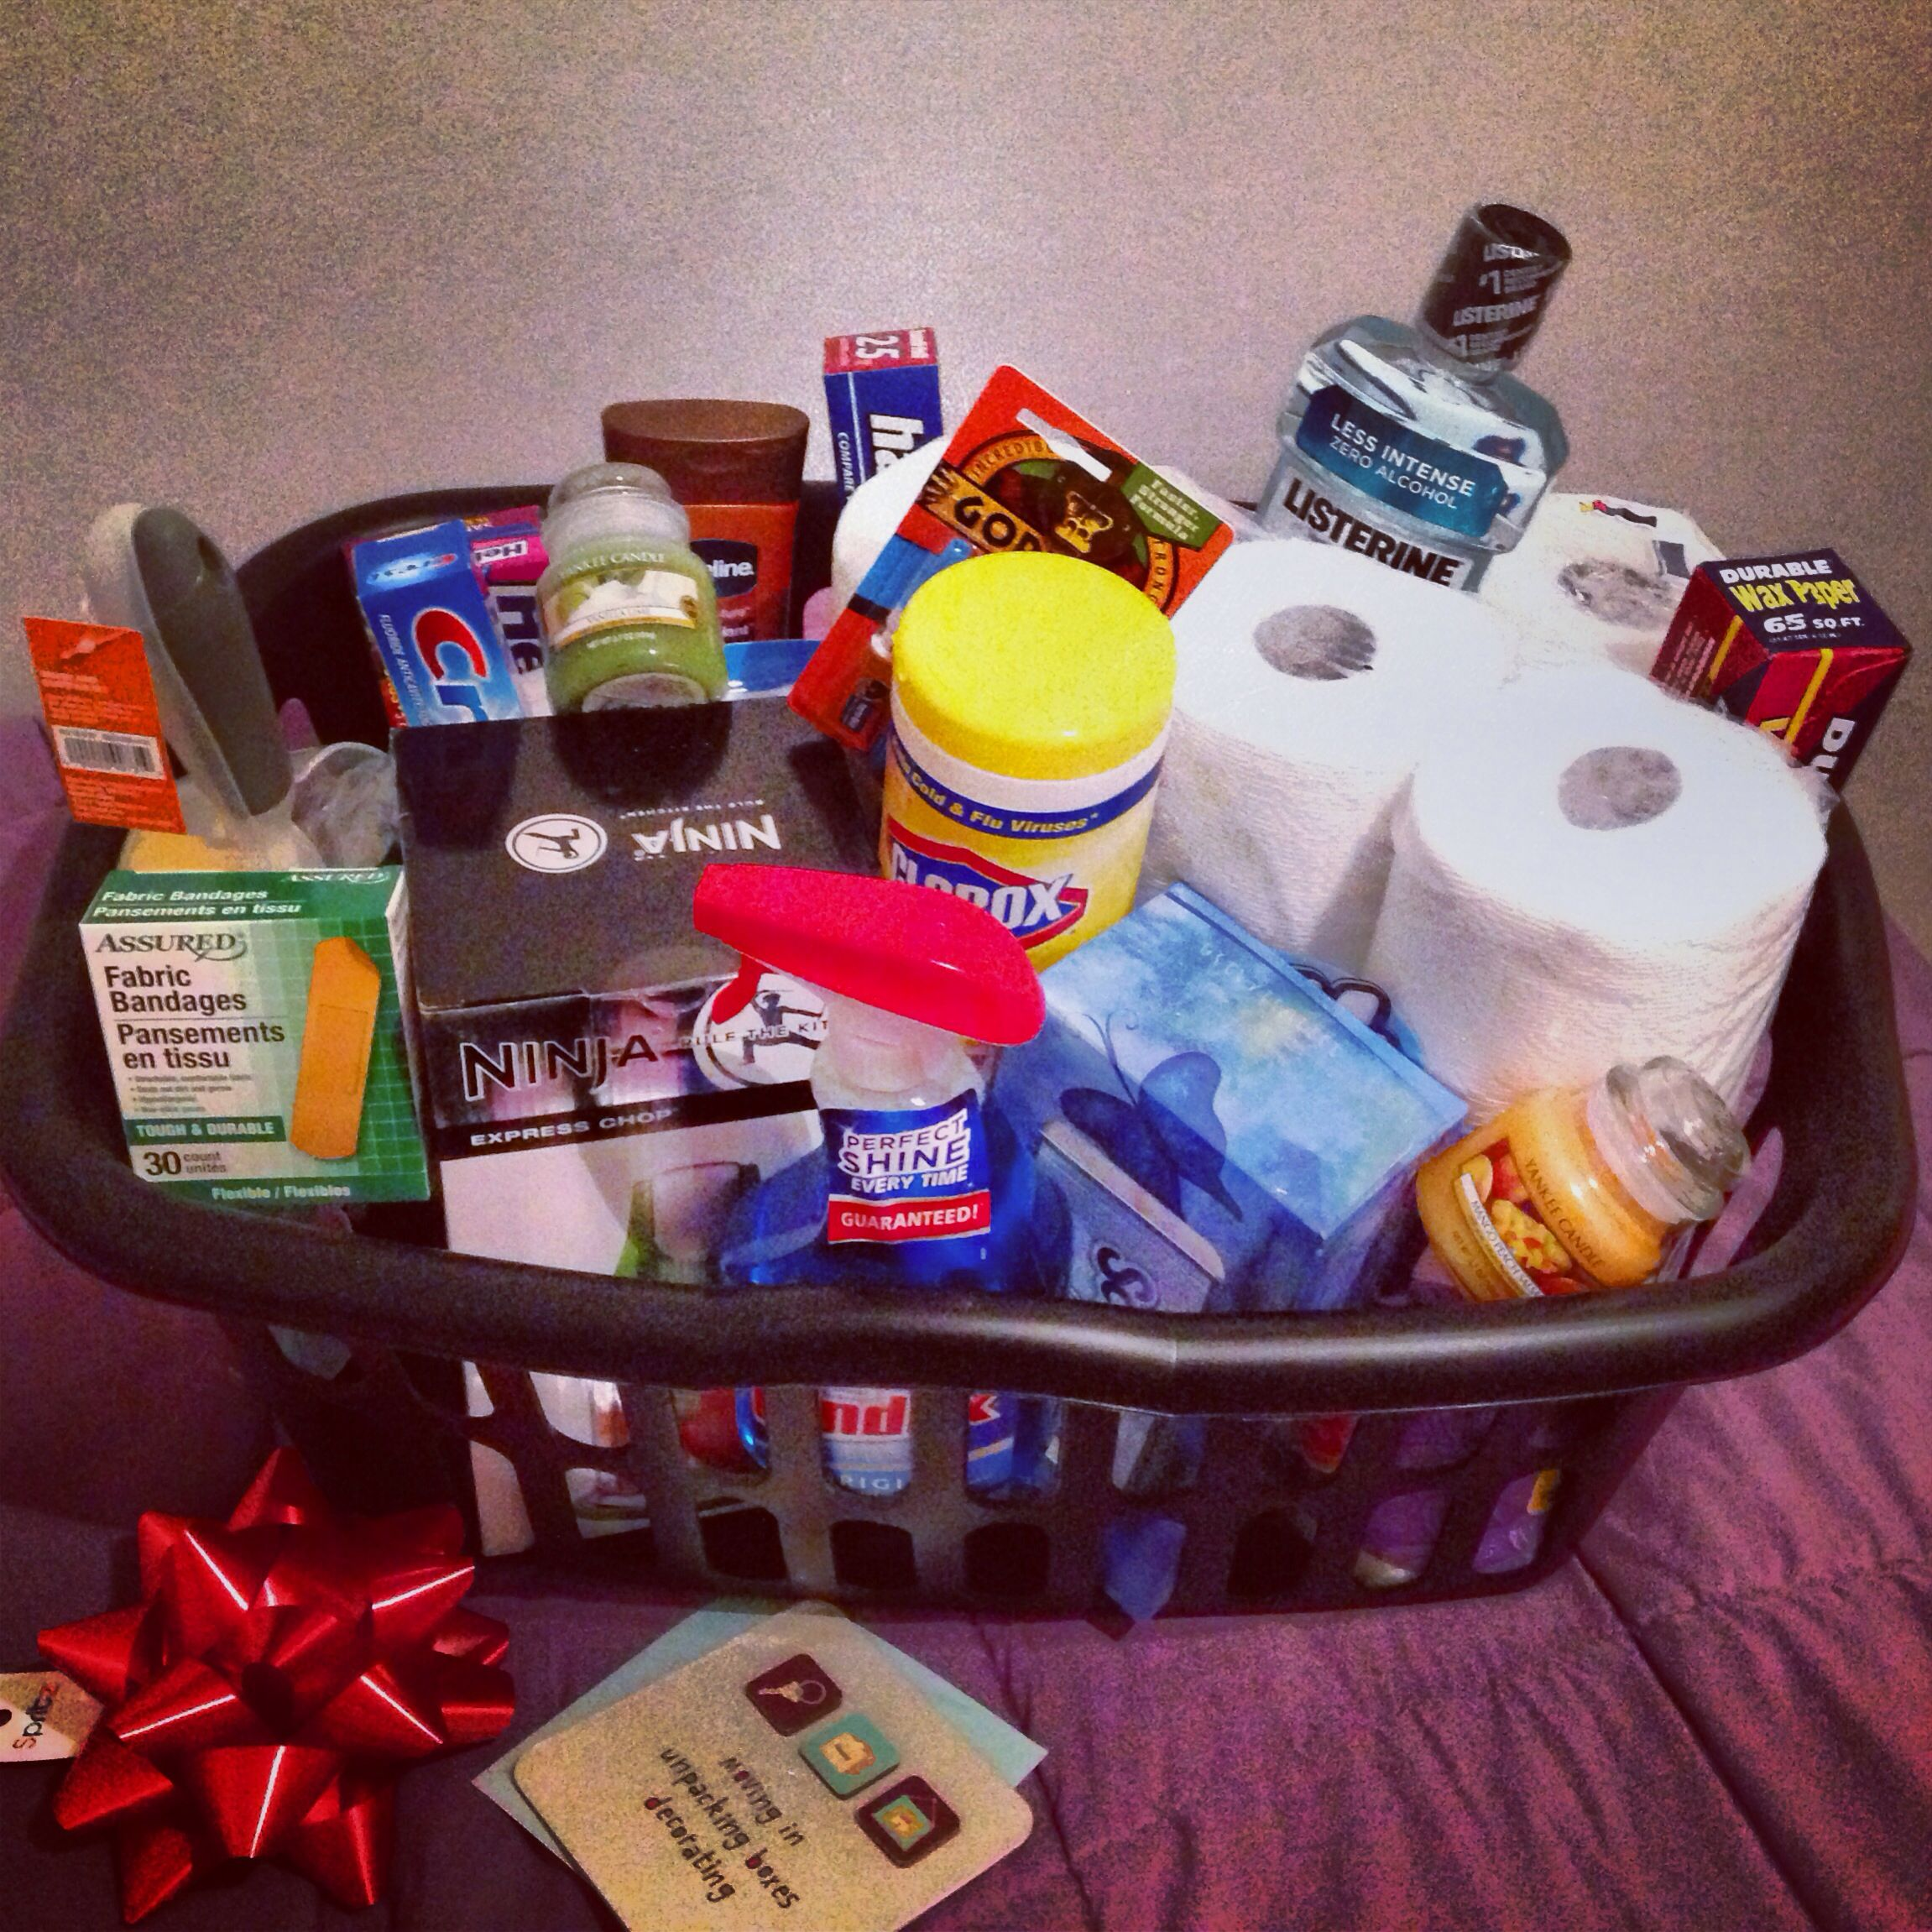 Best 25 Housewarming Gifts Ideas On Pinterest: DIY Housewarming Gift Basket- Include Household